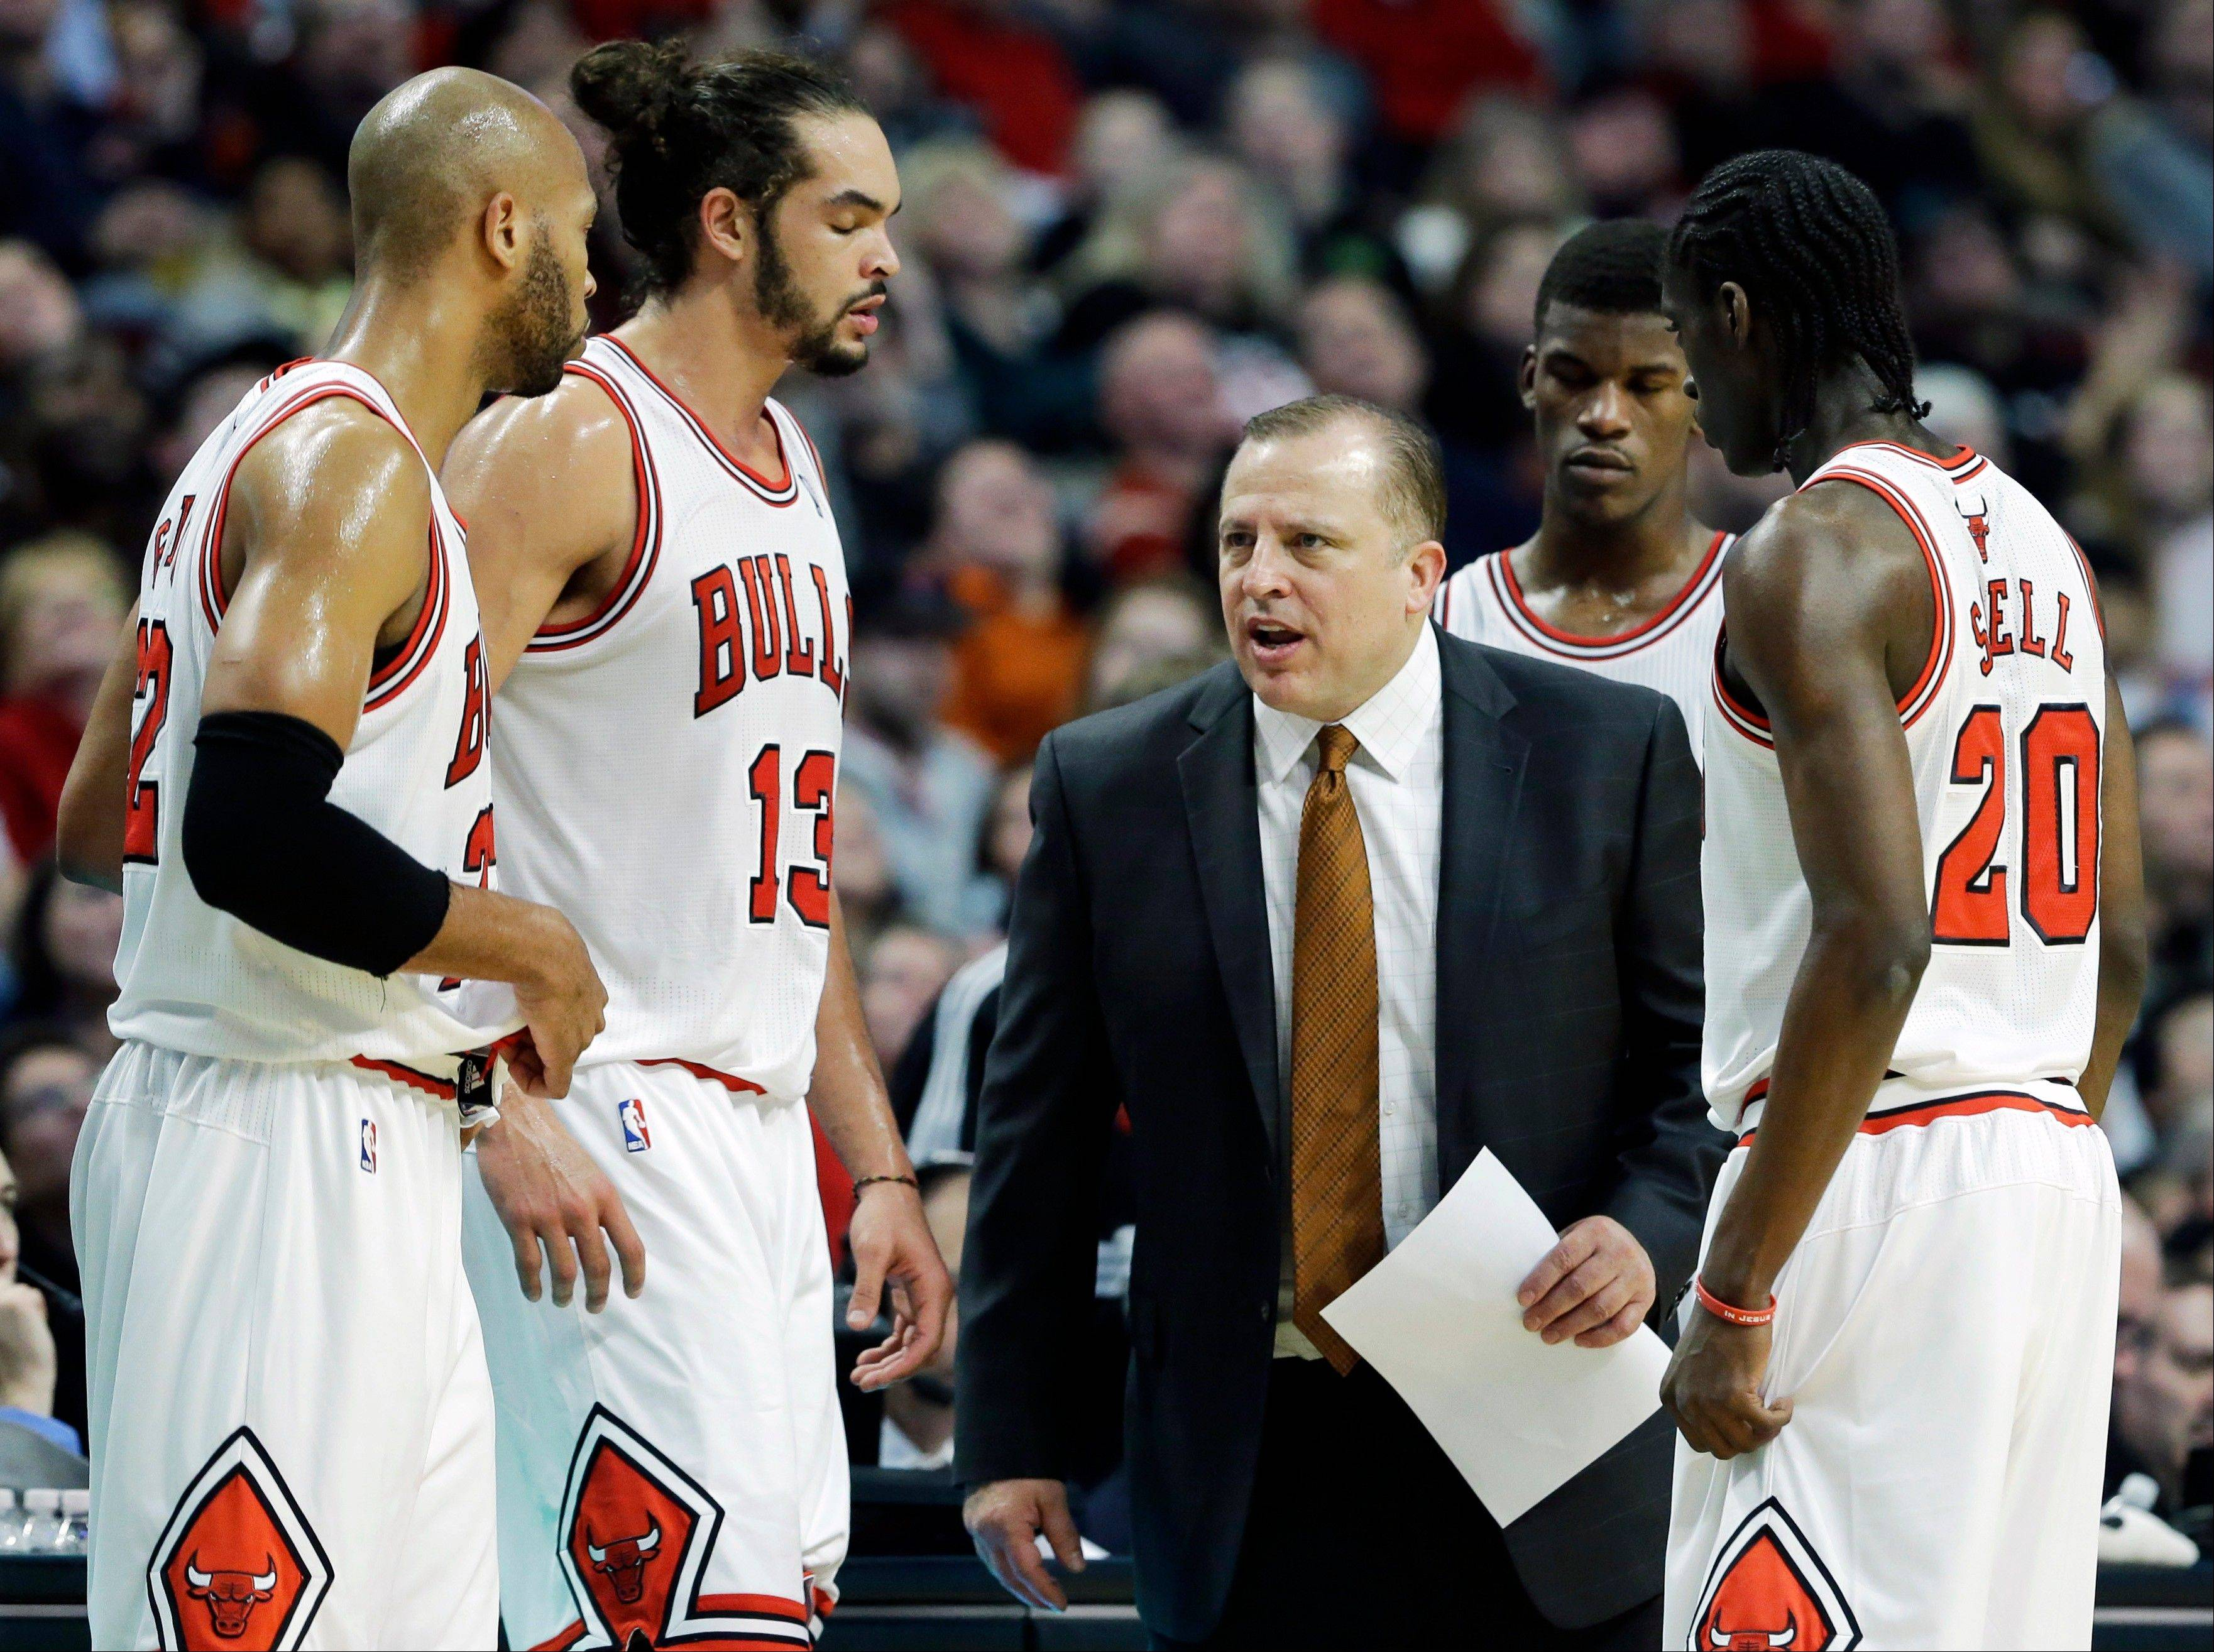 Chicago Bulls head coach Tom Thibodeau talks to his team during the second half of an NBA basketball game against the Dallas Mavericks in Chicago on Saturday, Dec. 28, 2013. The Mavericks won 105-83. (AP Photo/Nam Y. Huh)